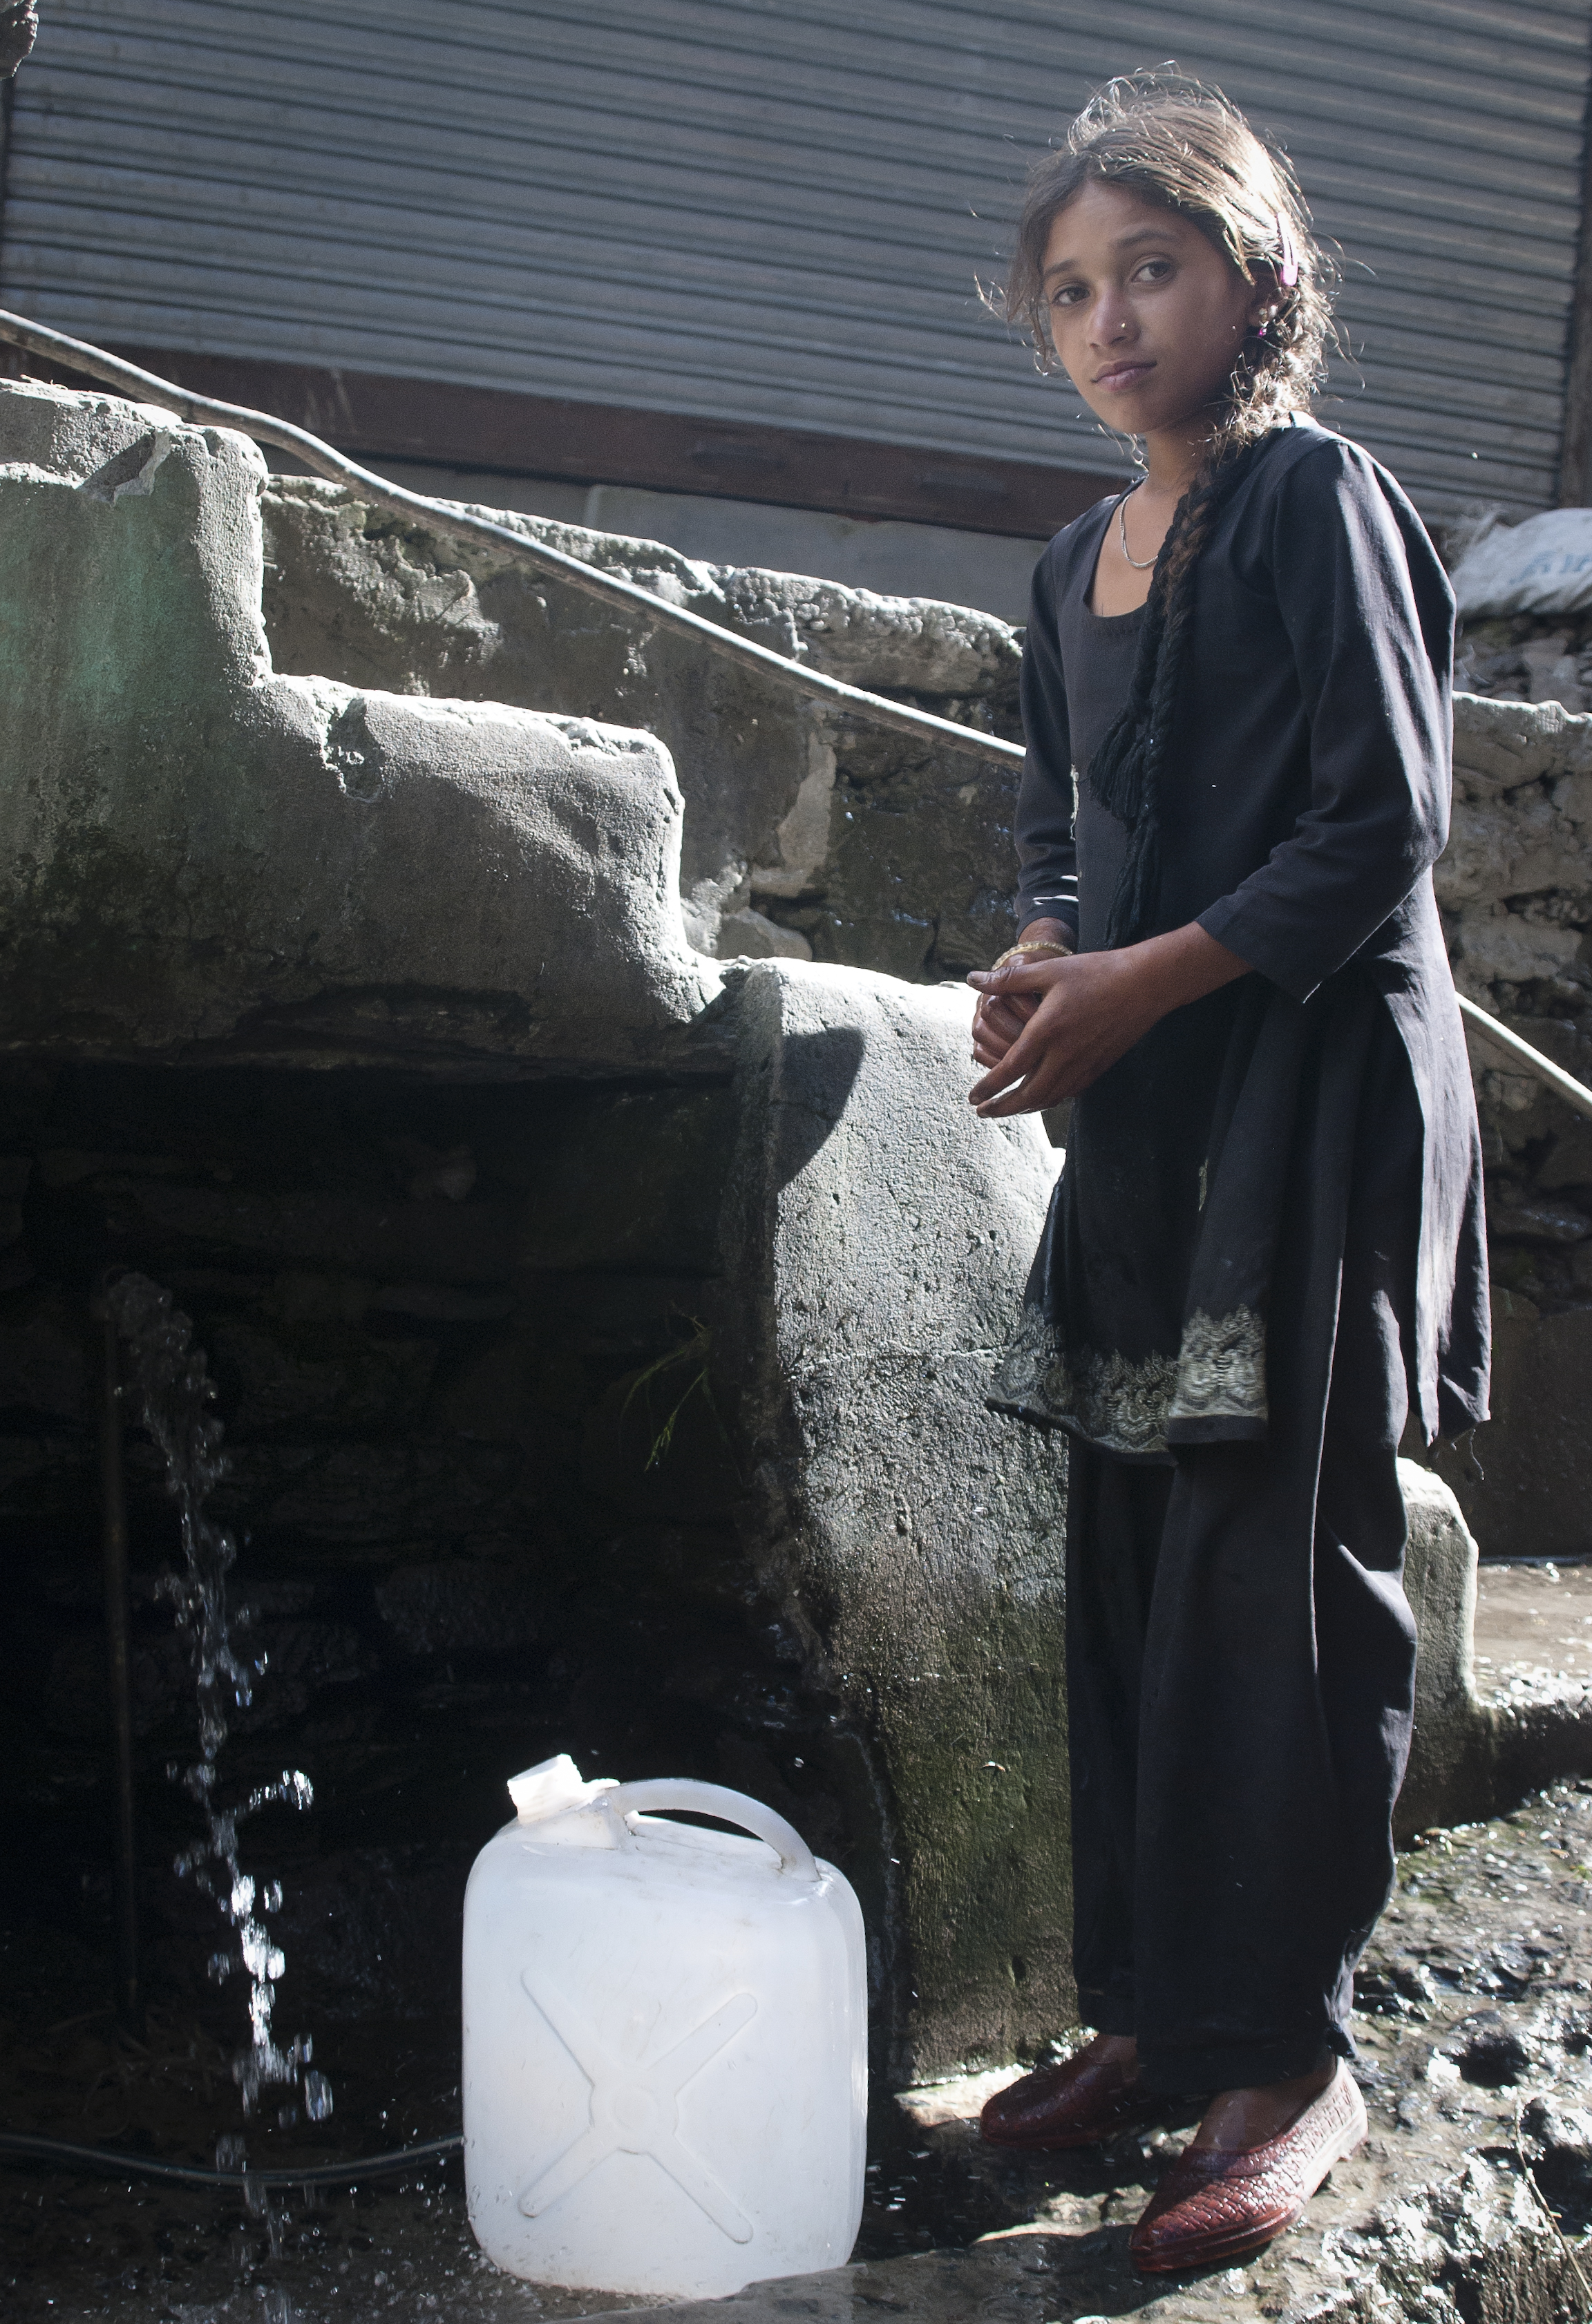 A young girl from the village collects water for her family.